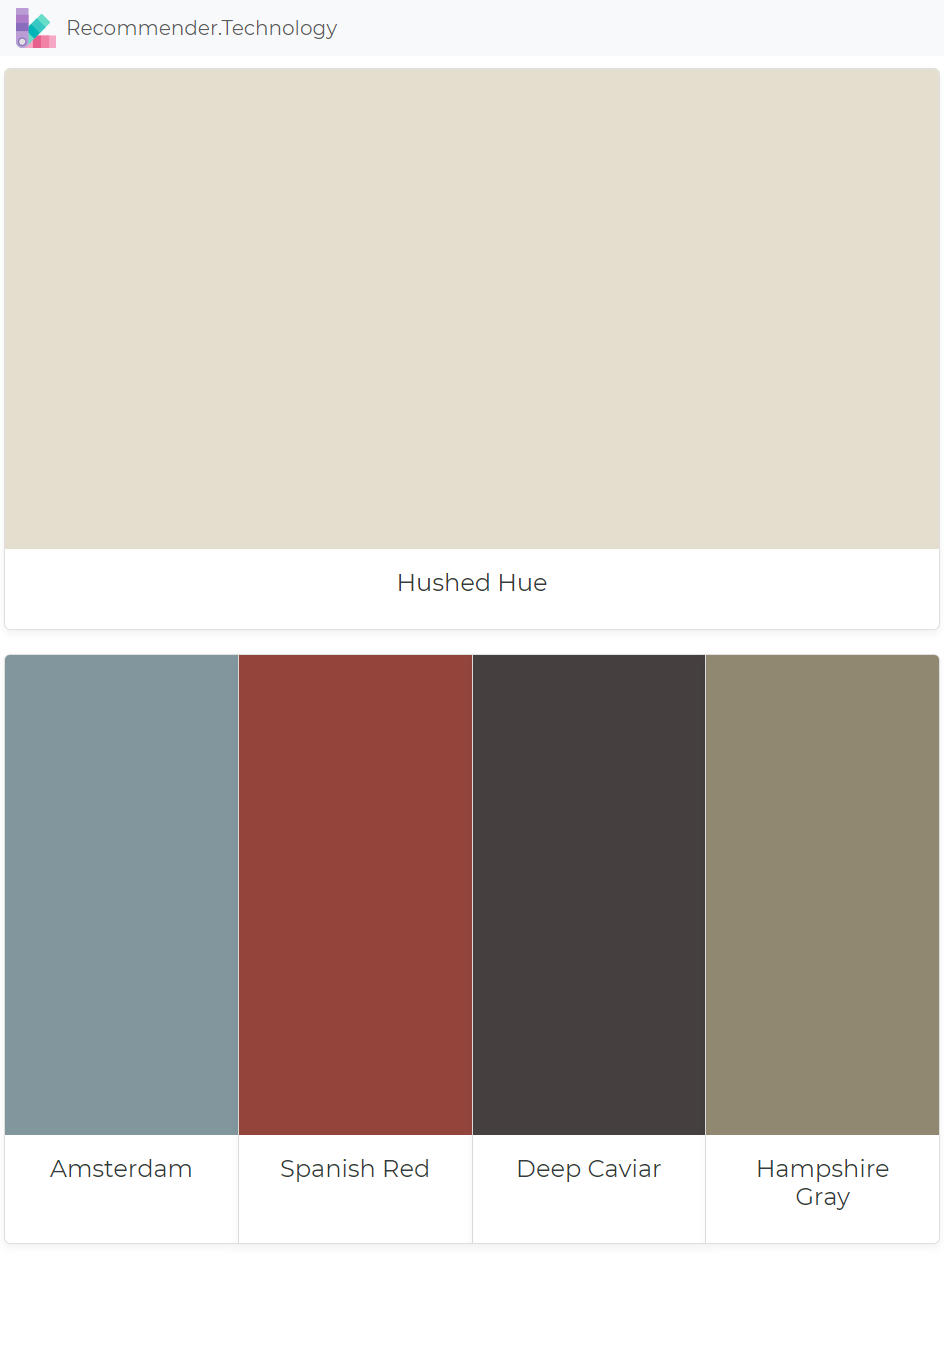 Hushed Hue Amsterdam Spanish Red Deep Caviar Hampshire Gray Paint Color Palettes